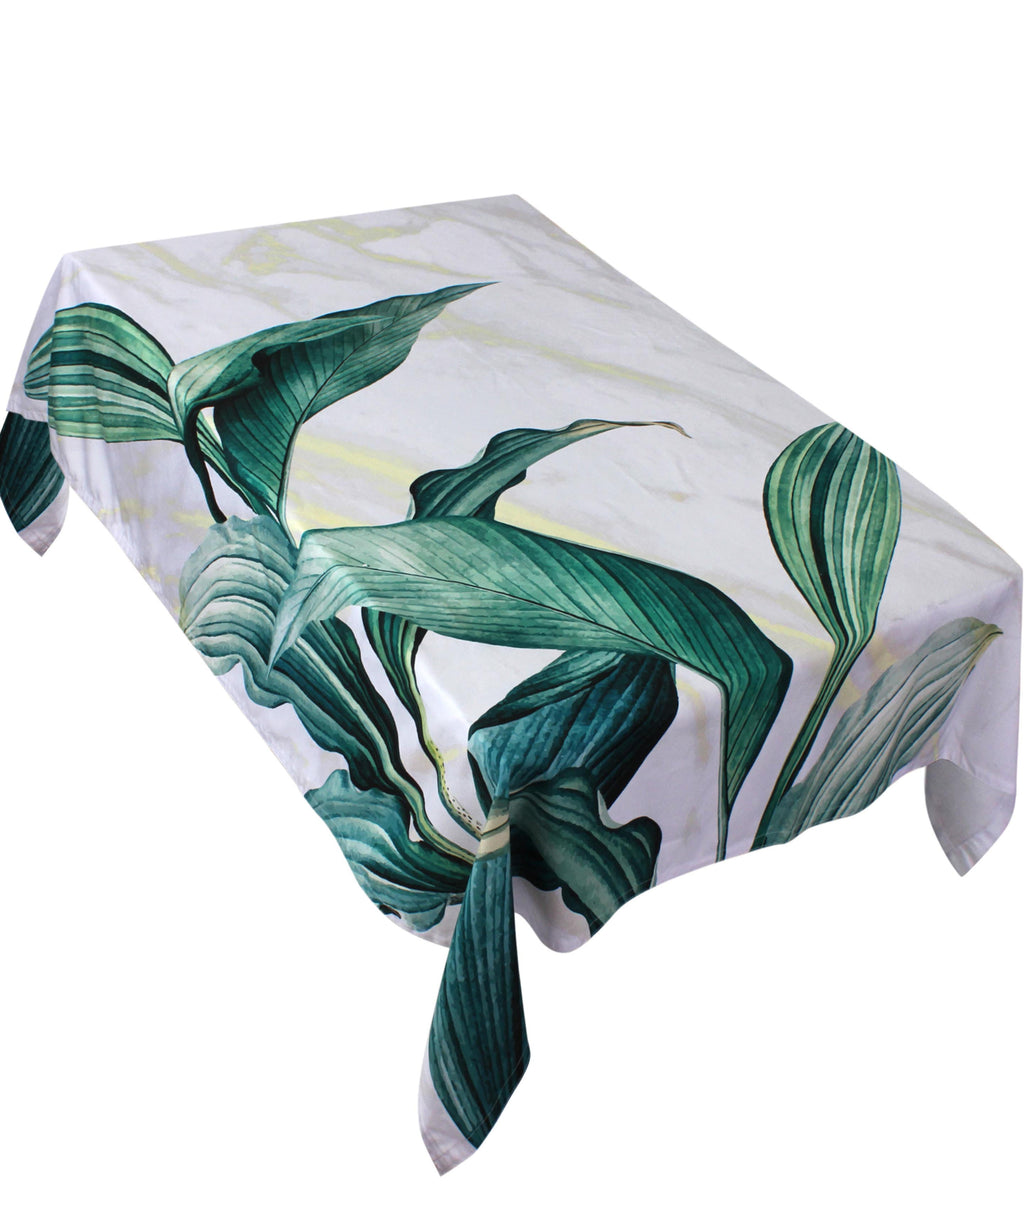 The Green Leaf Table Cover